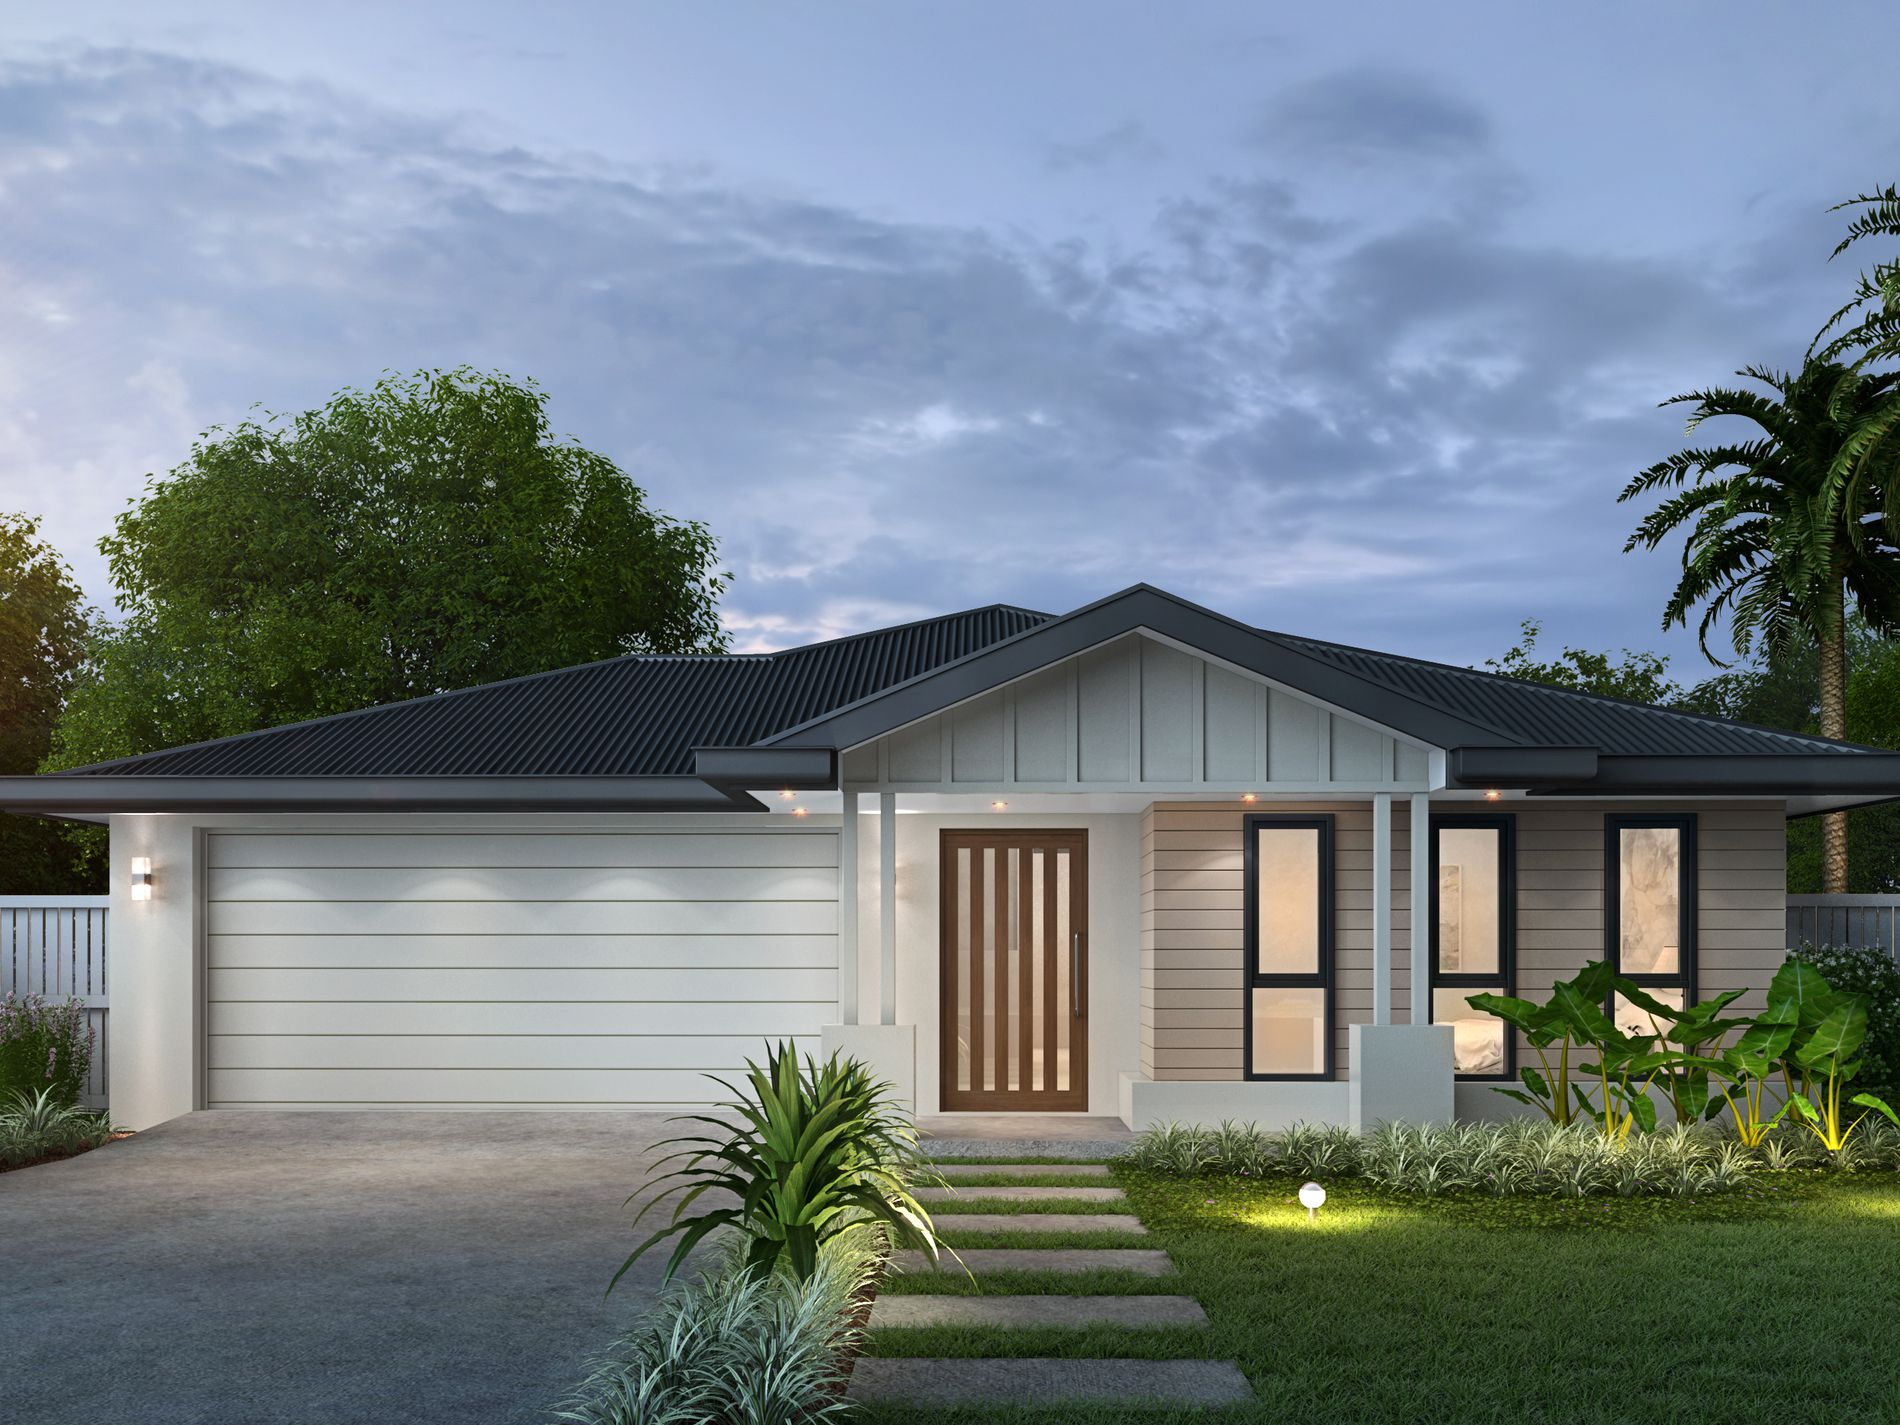 Lot 1  27 Kurago Street Chermside West, Chermside West